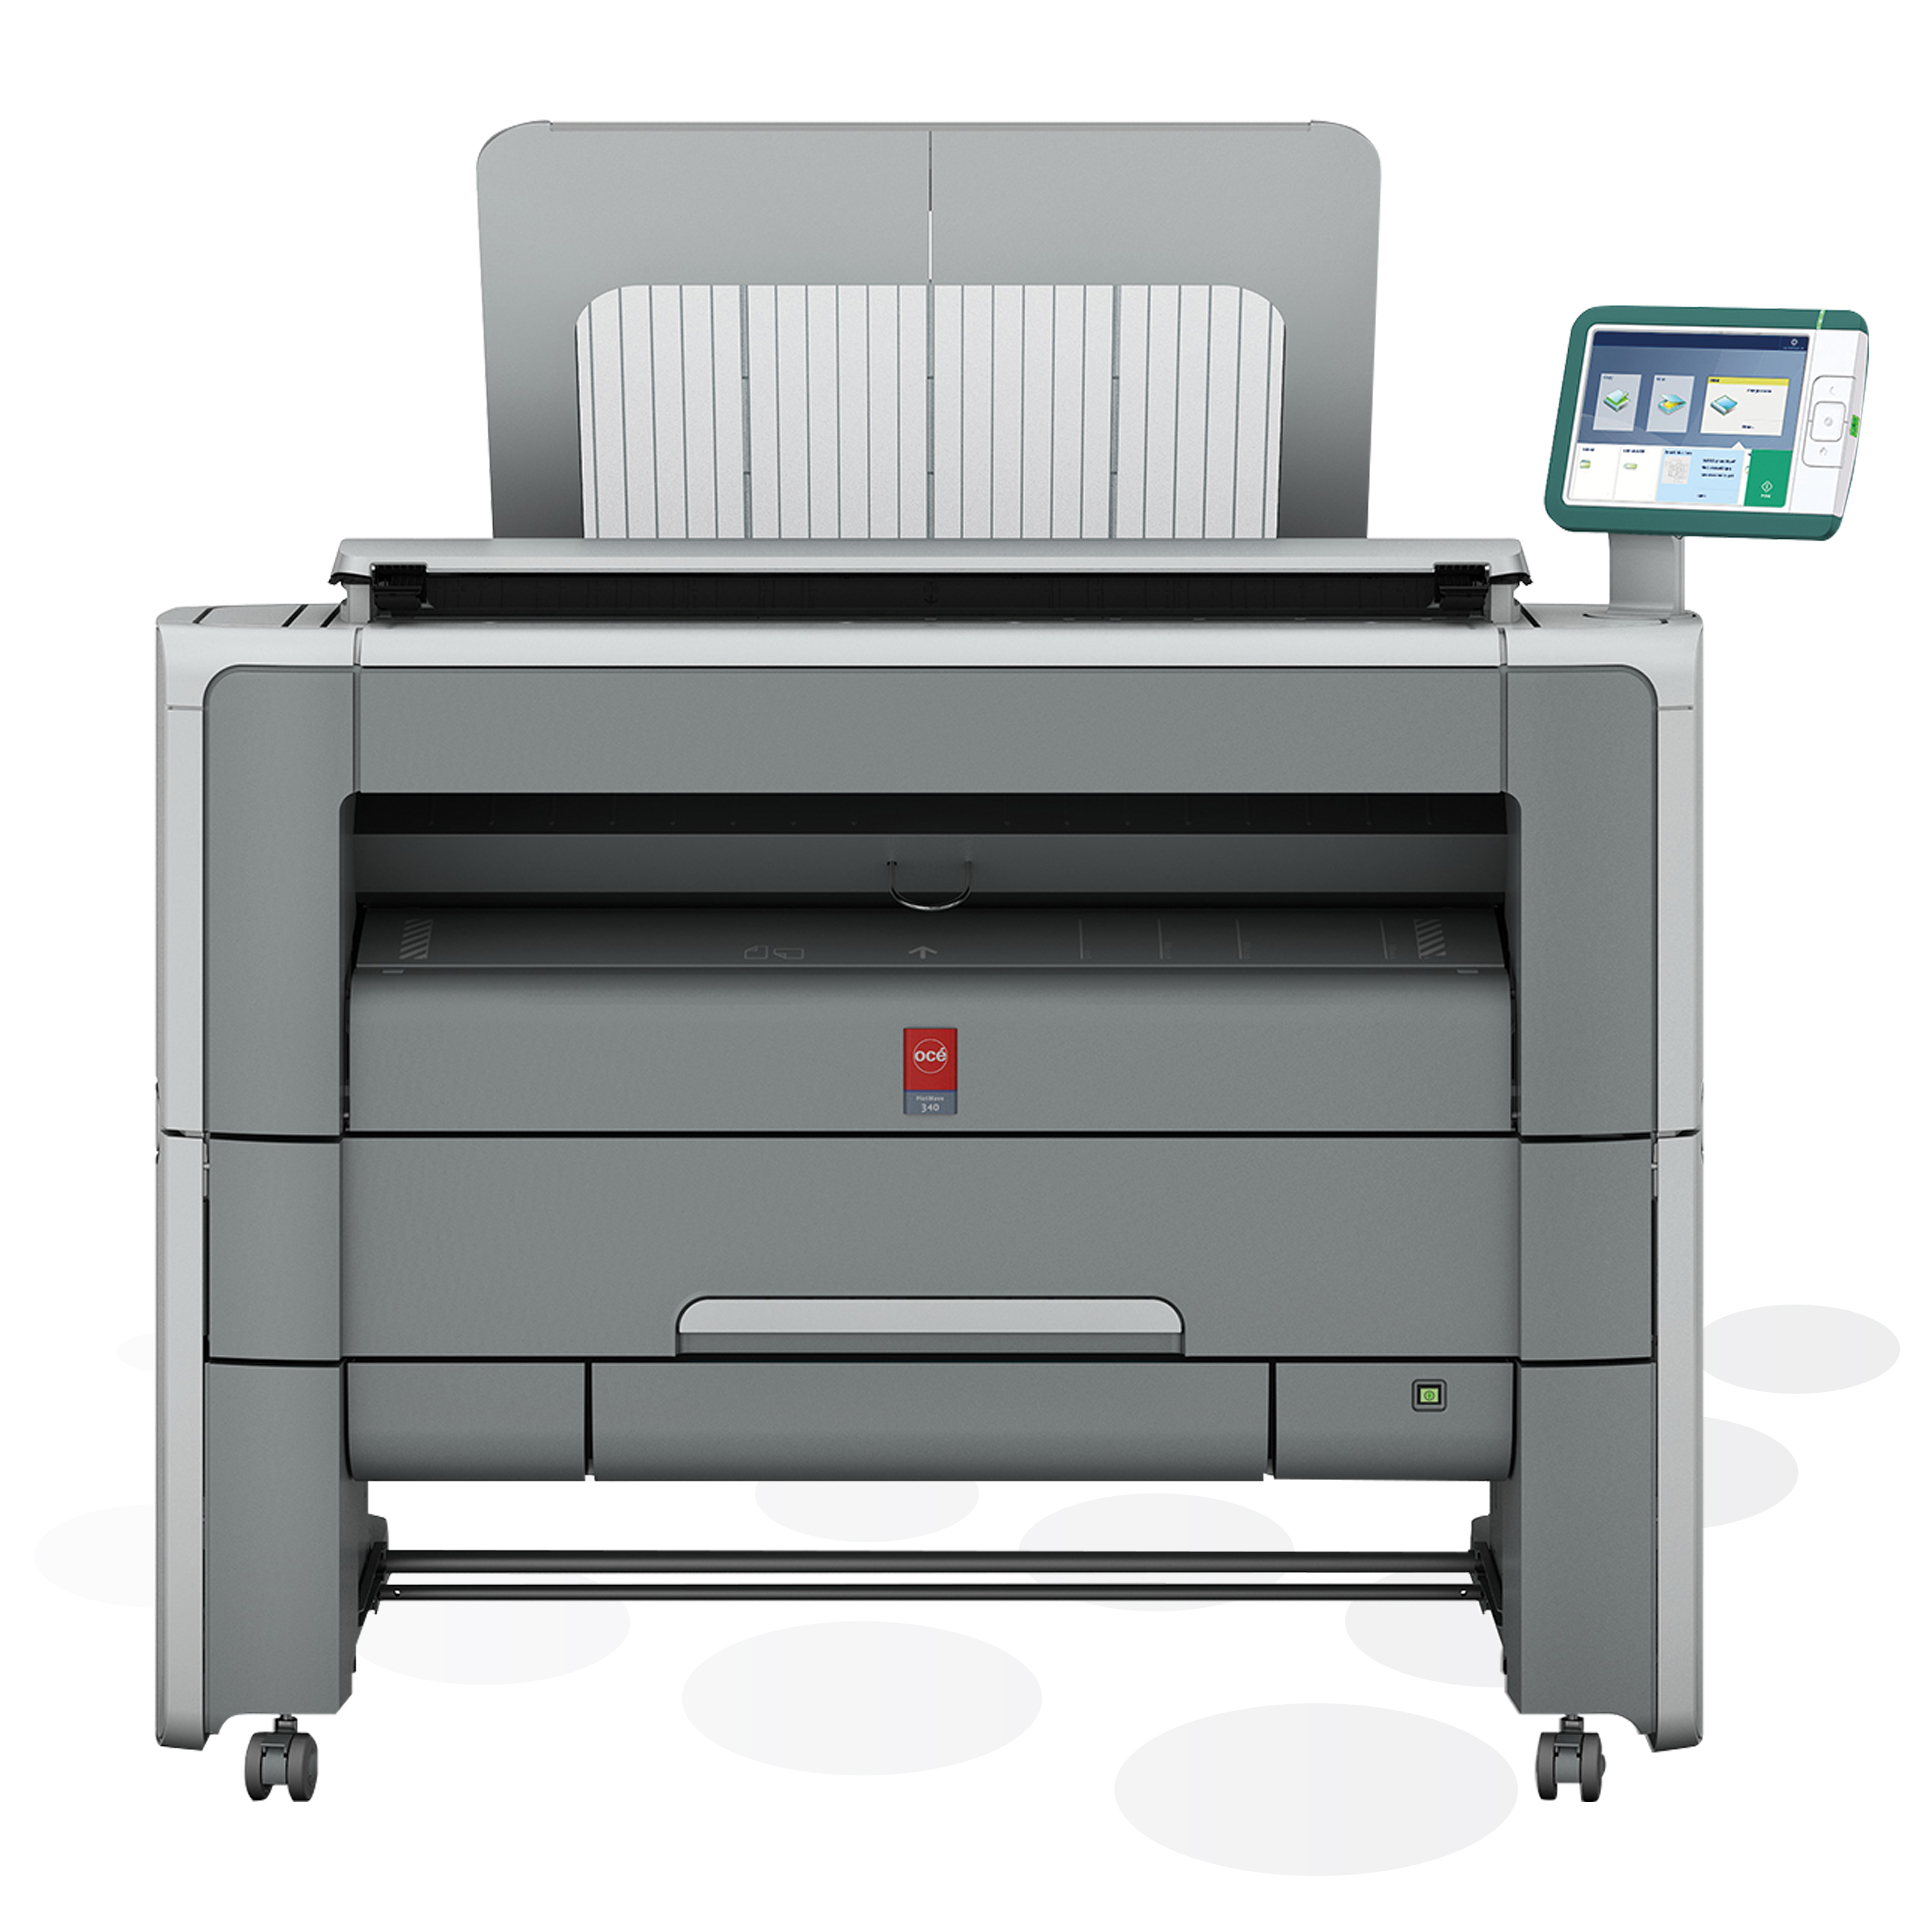 PlotWave 340/360 Printer mit Scanner